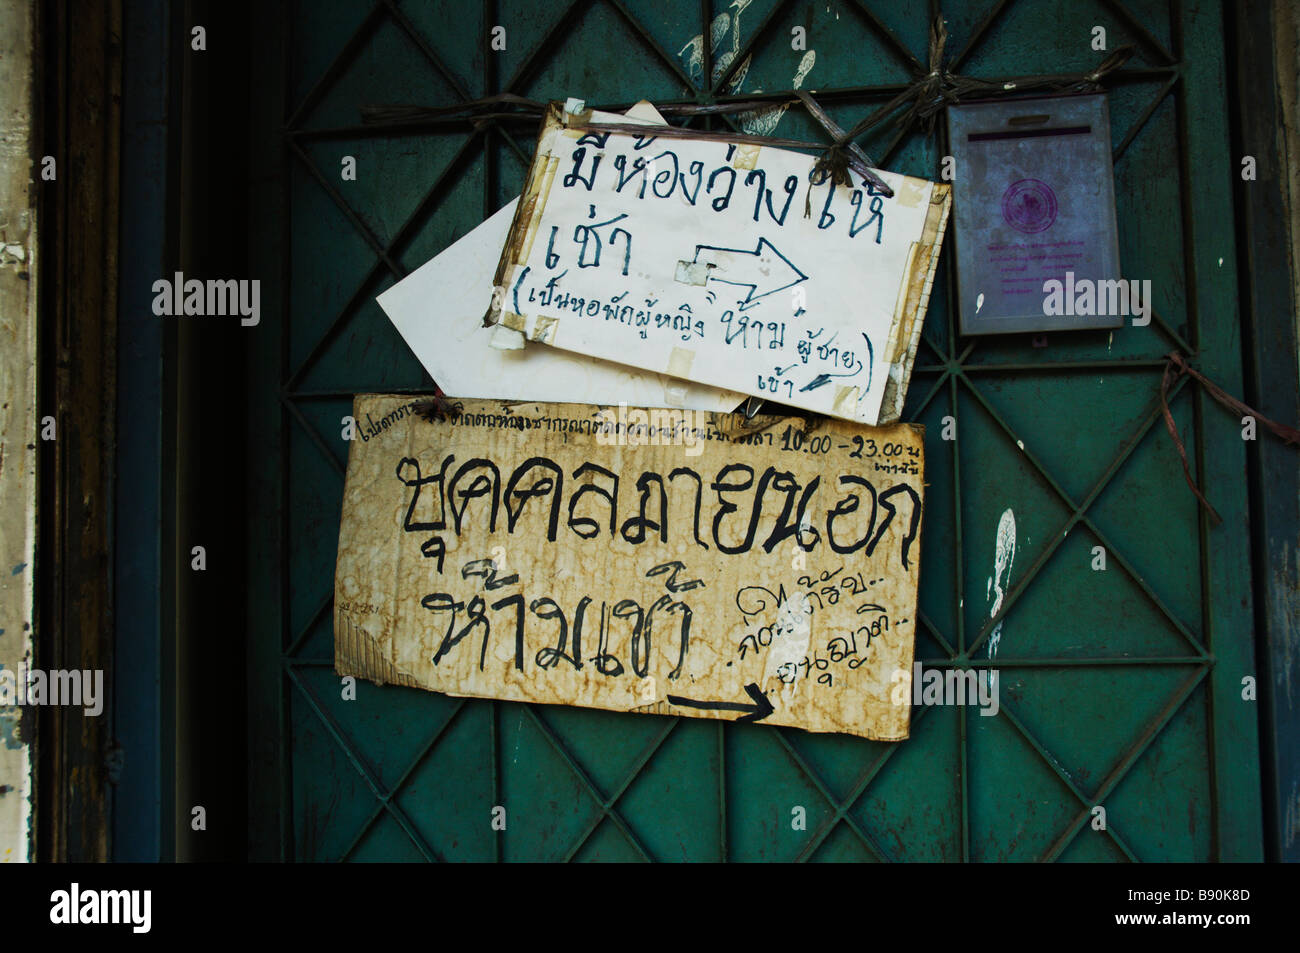 Sticky notes on old door reading in Thai 'Room for rent' - Stock Image